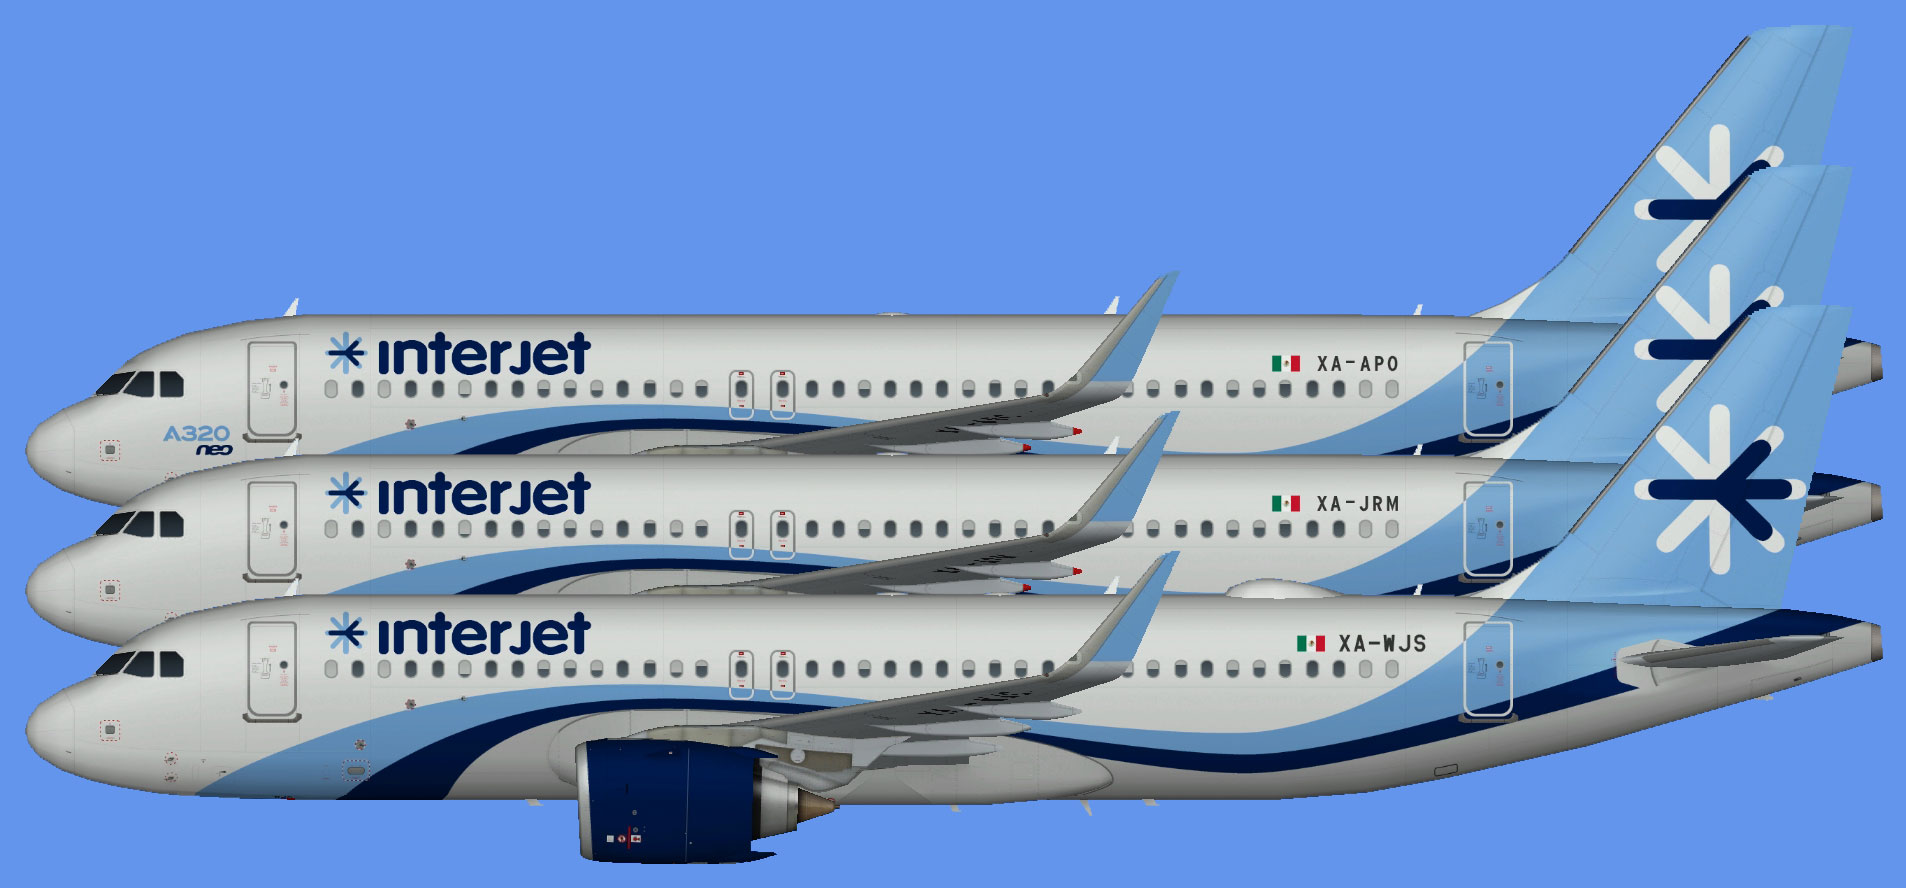 Interjet Airbus A320 NEO